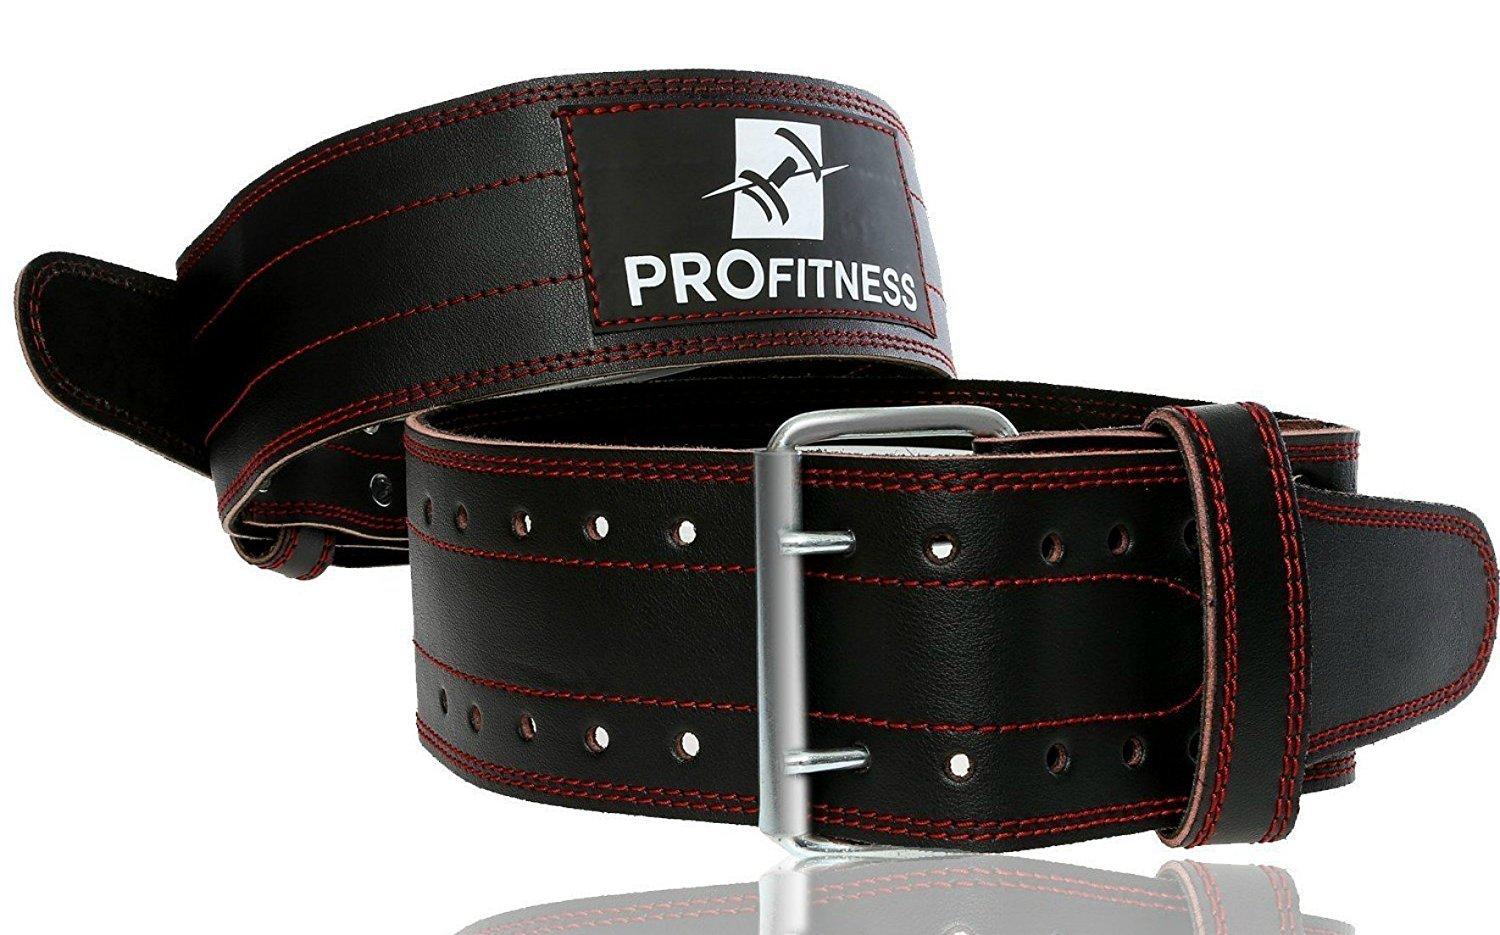 ProFitness Genuine Leather Workout Belt (4 Inches Wide) - Proper Weight Lifting Form - Lower Back Support for Squats, Deadlifts, (Black/Red, X-Large 42''-49'' (Waist Size not Pant Size))